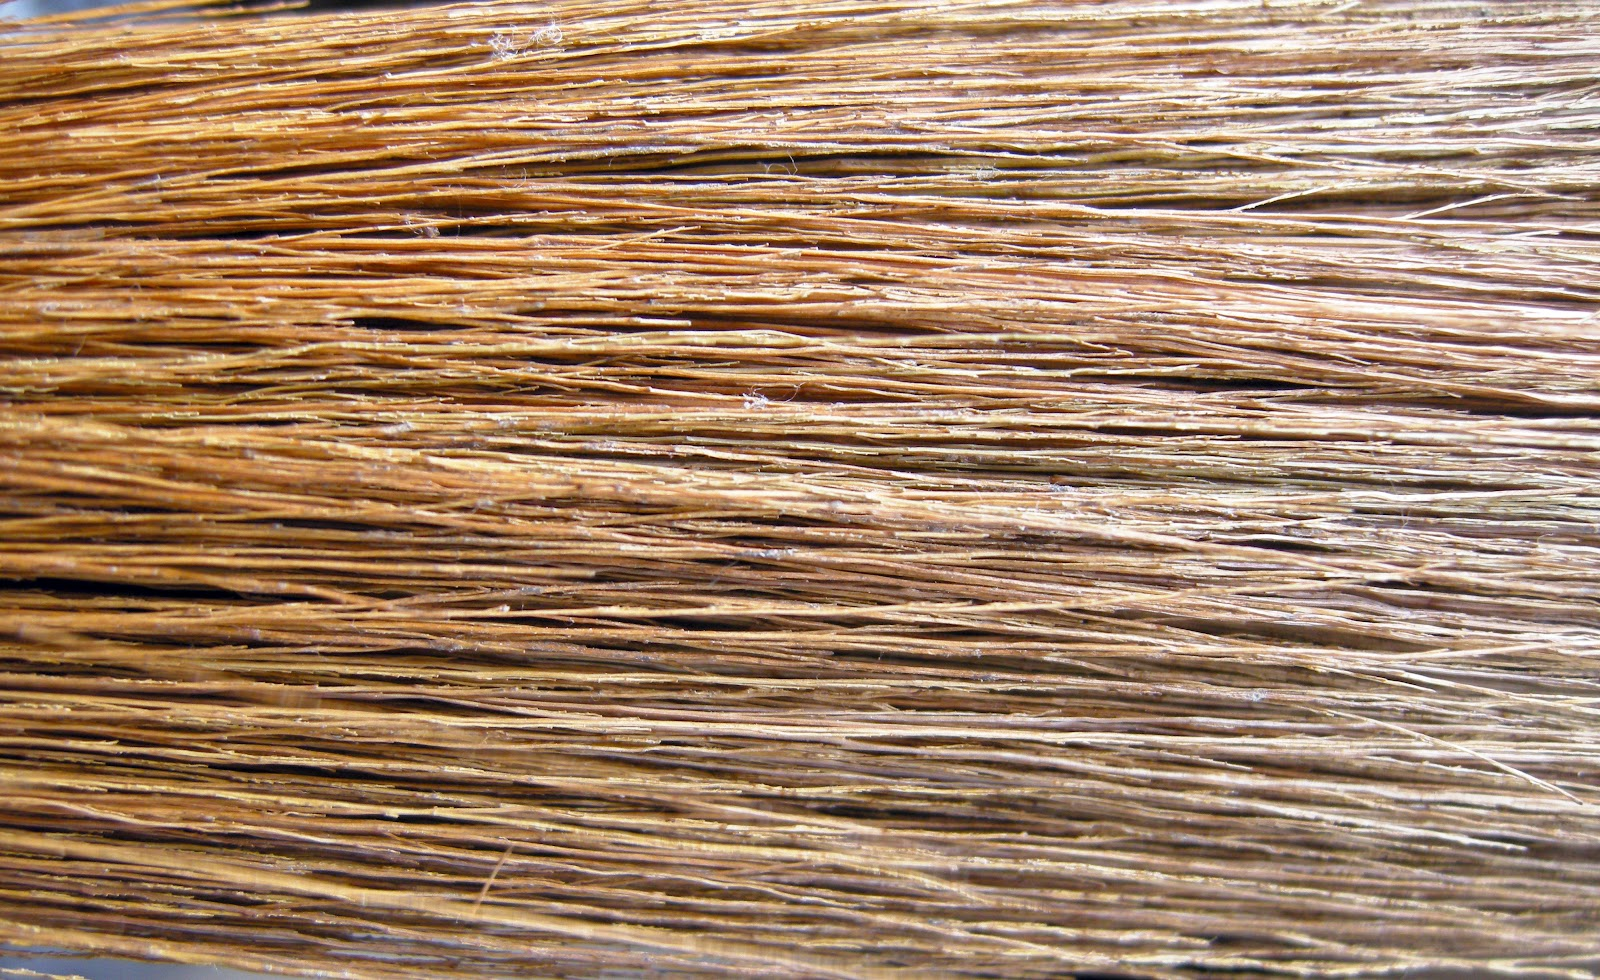 Threads And Fibers Mail: A1 Free Texture And Photos: Free Thread, Fibers, Photos